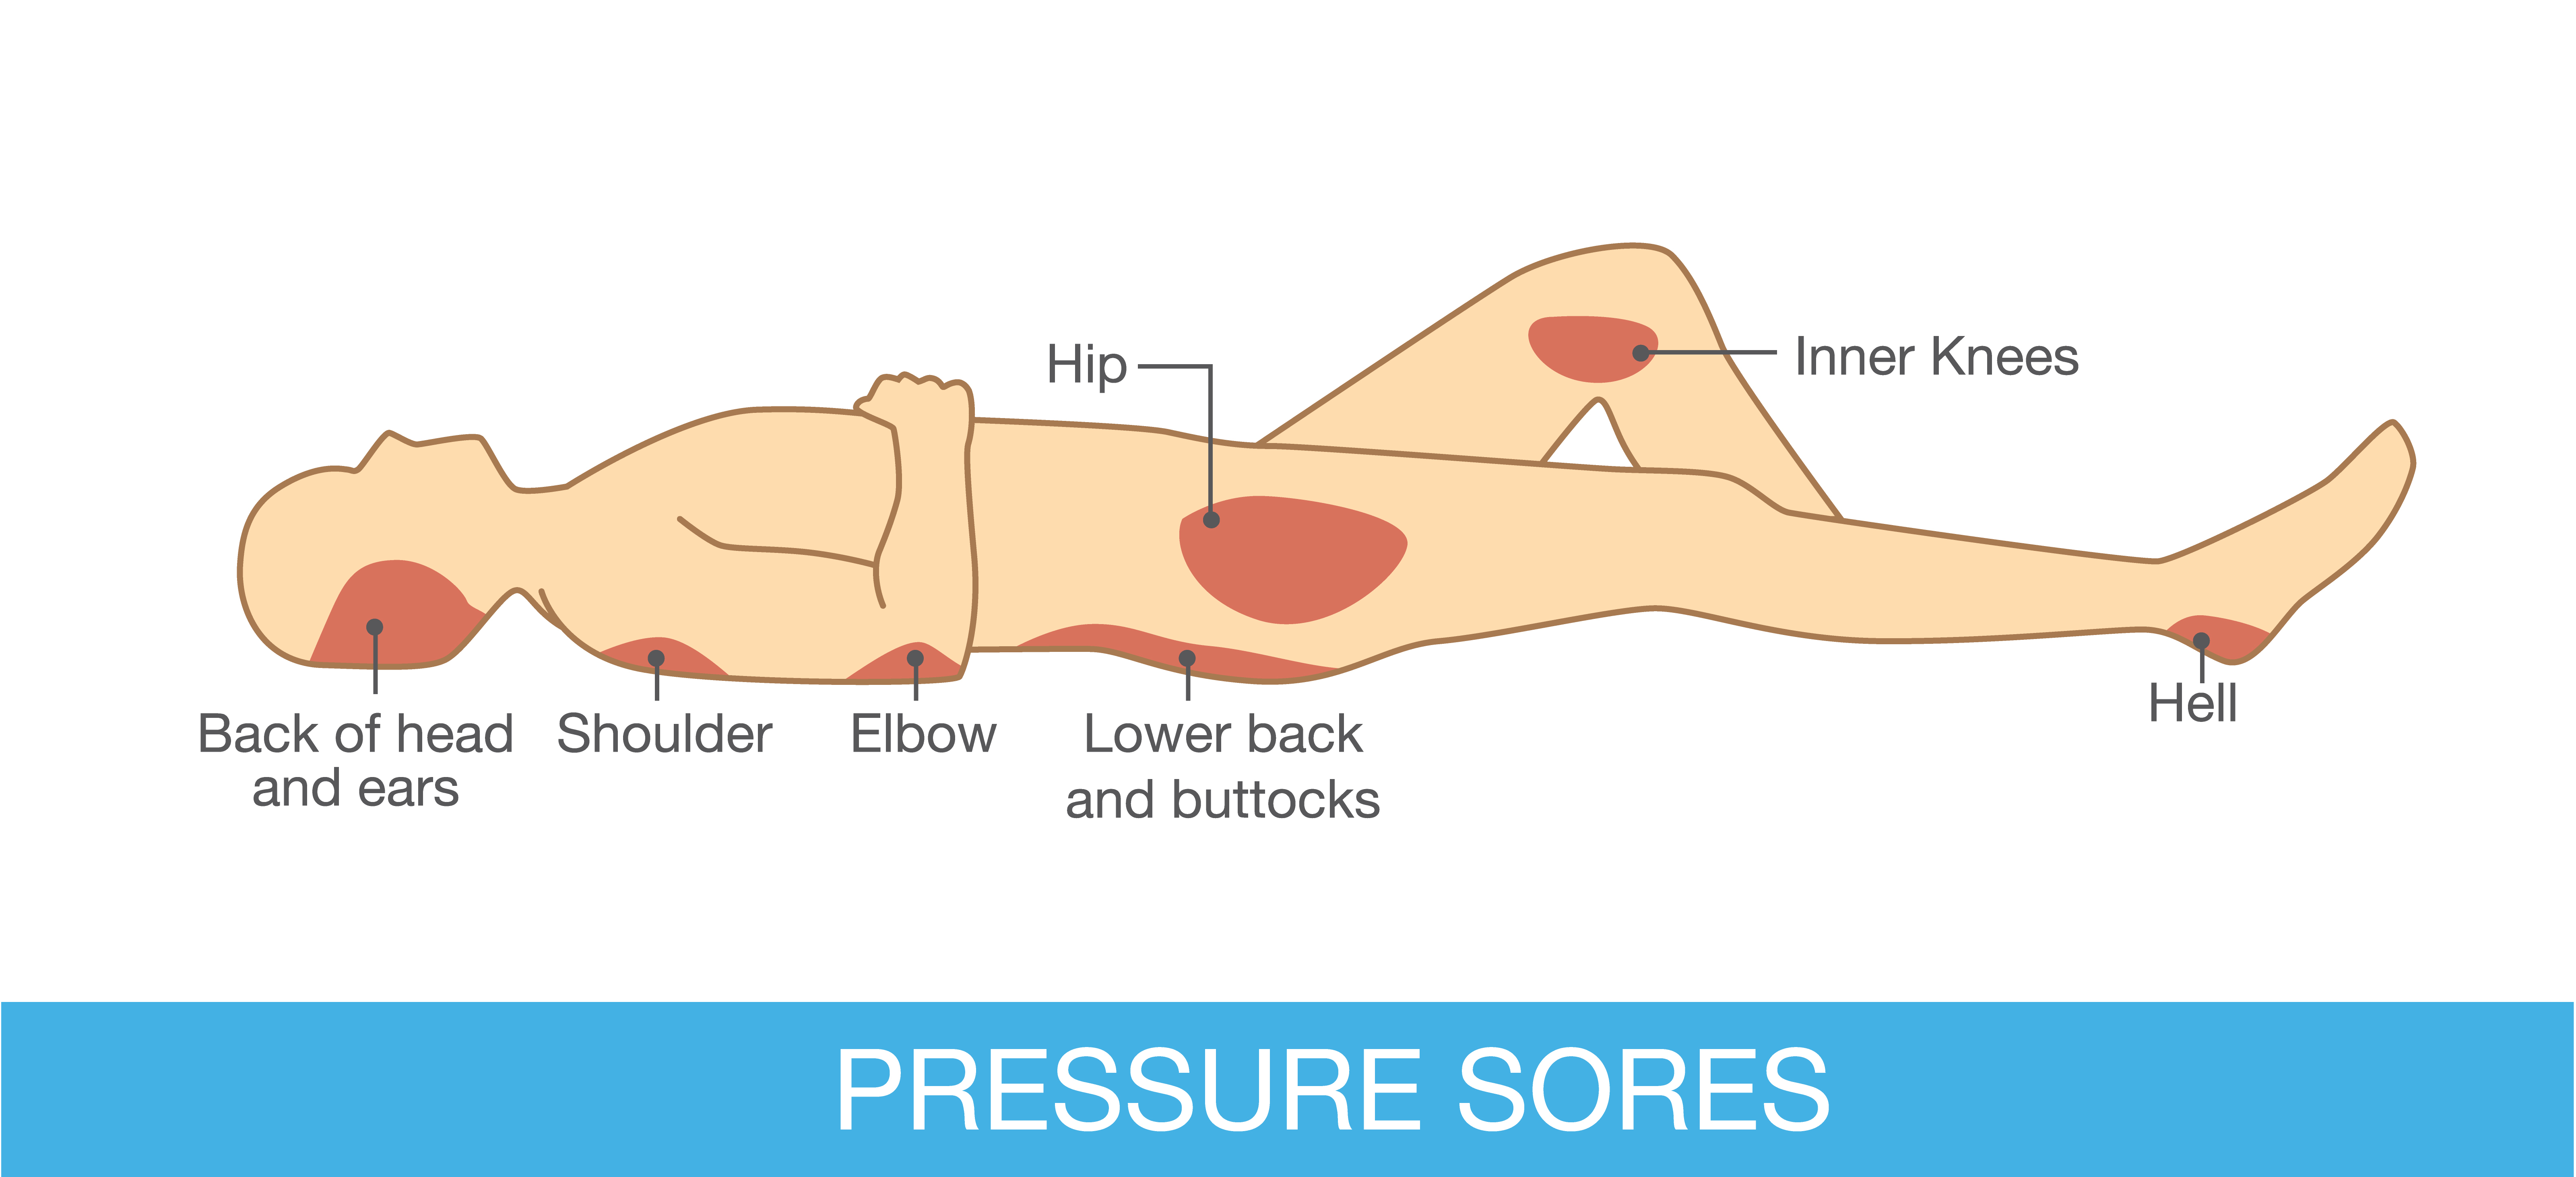 Development Of Pressure Ulcers  Causes And Signs